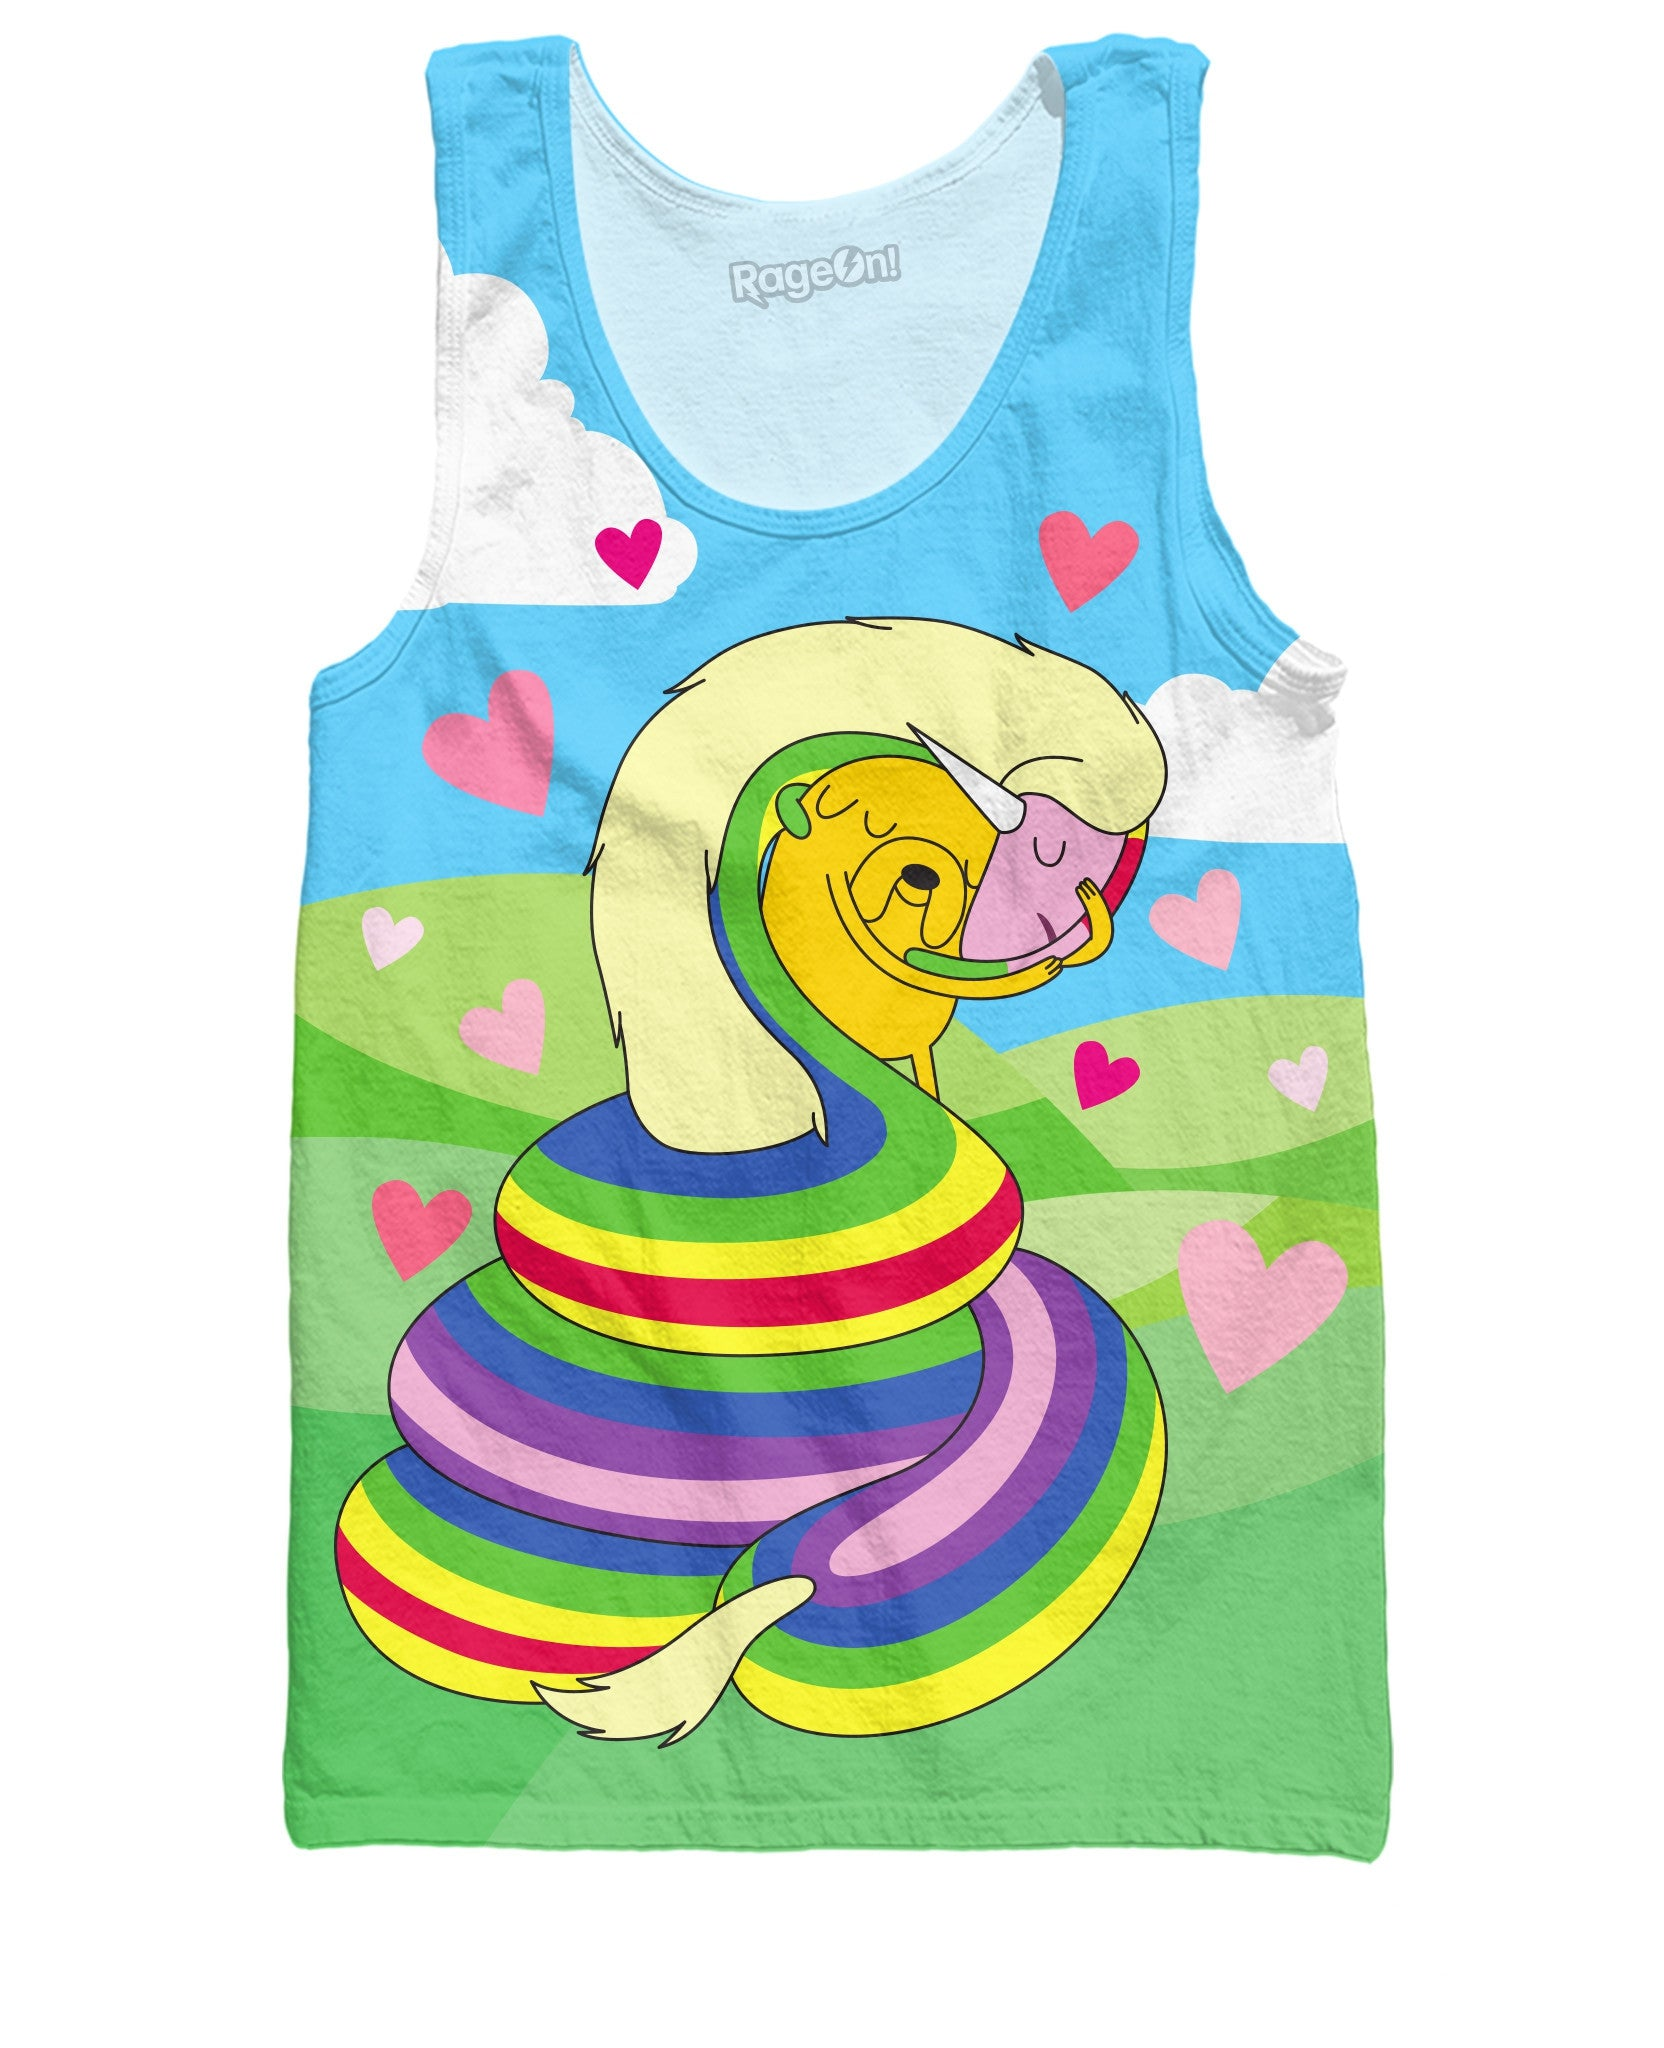 Jake and Lady Rainicorn Tank Top